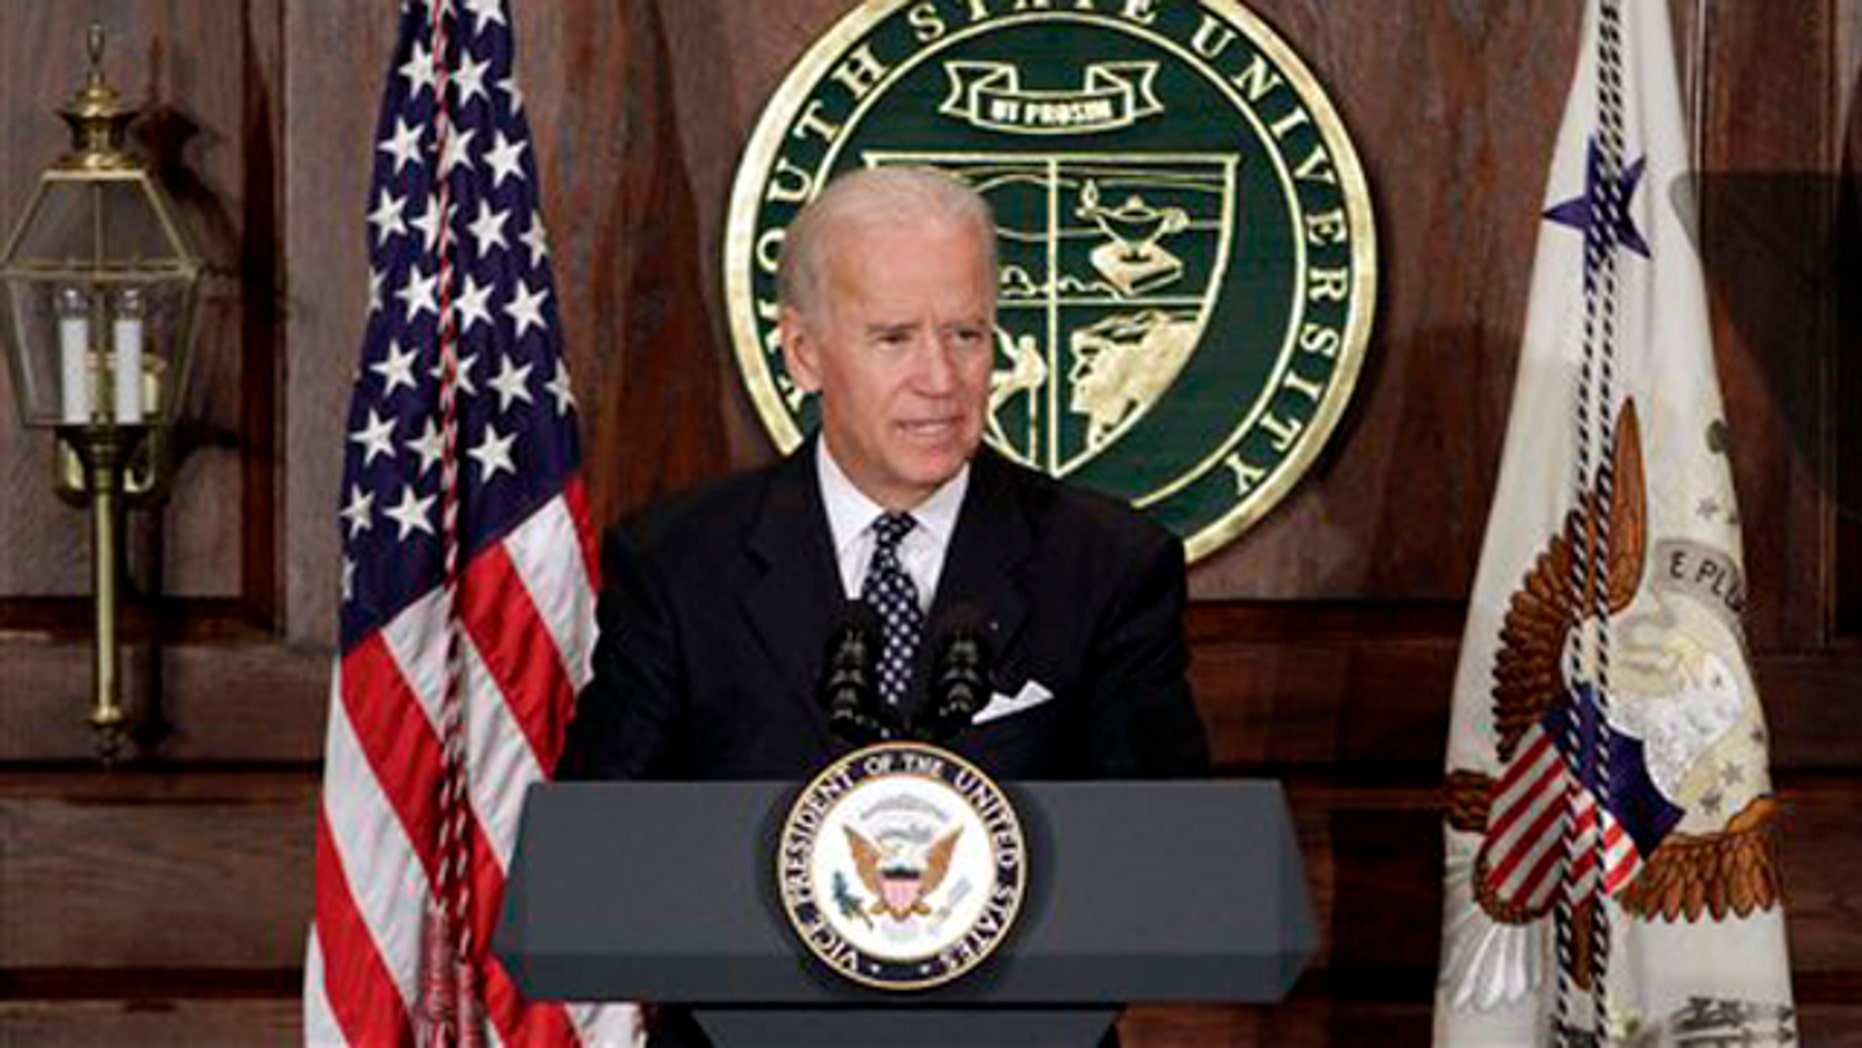 Oct. 20, 2011: Vice President Biden speaks to students at Plymouth State University in Plymouth, N.H.